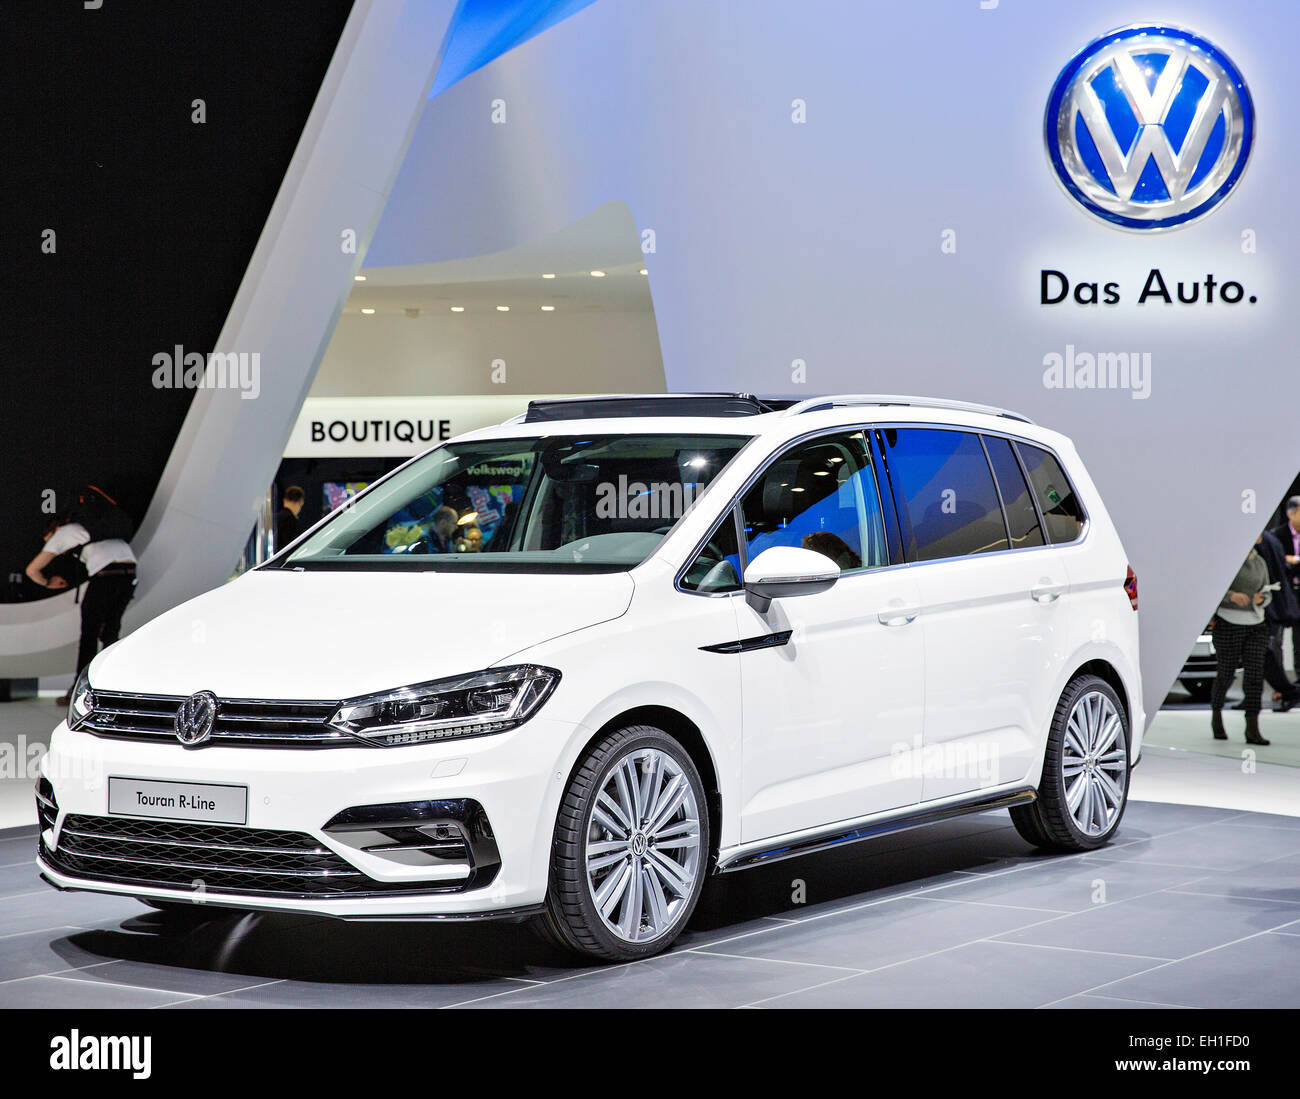 volkswagen touran r line stock photo 79324700 alamy. Black Bedroom Furniture Sets. Home Design Ideas